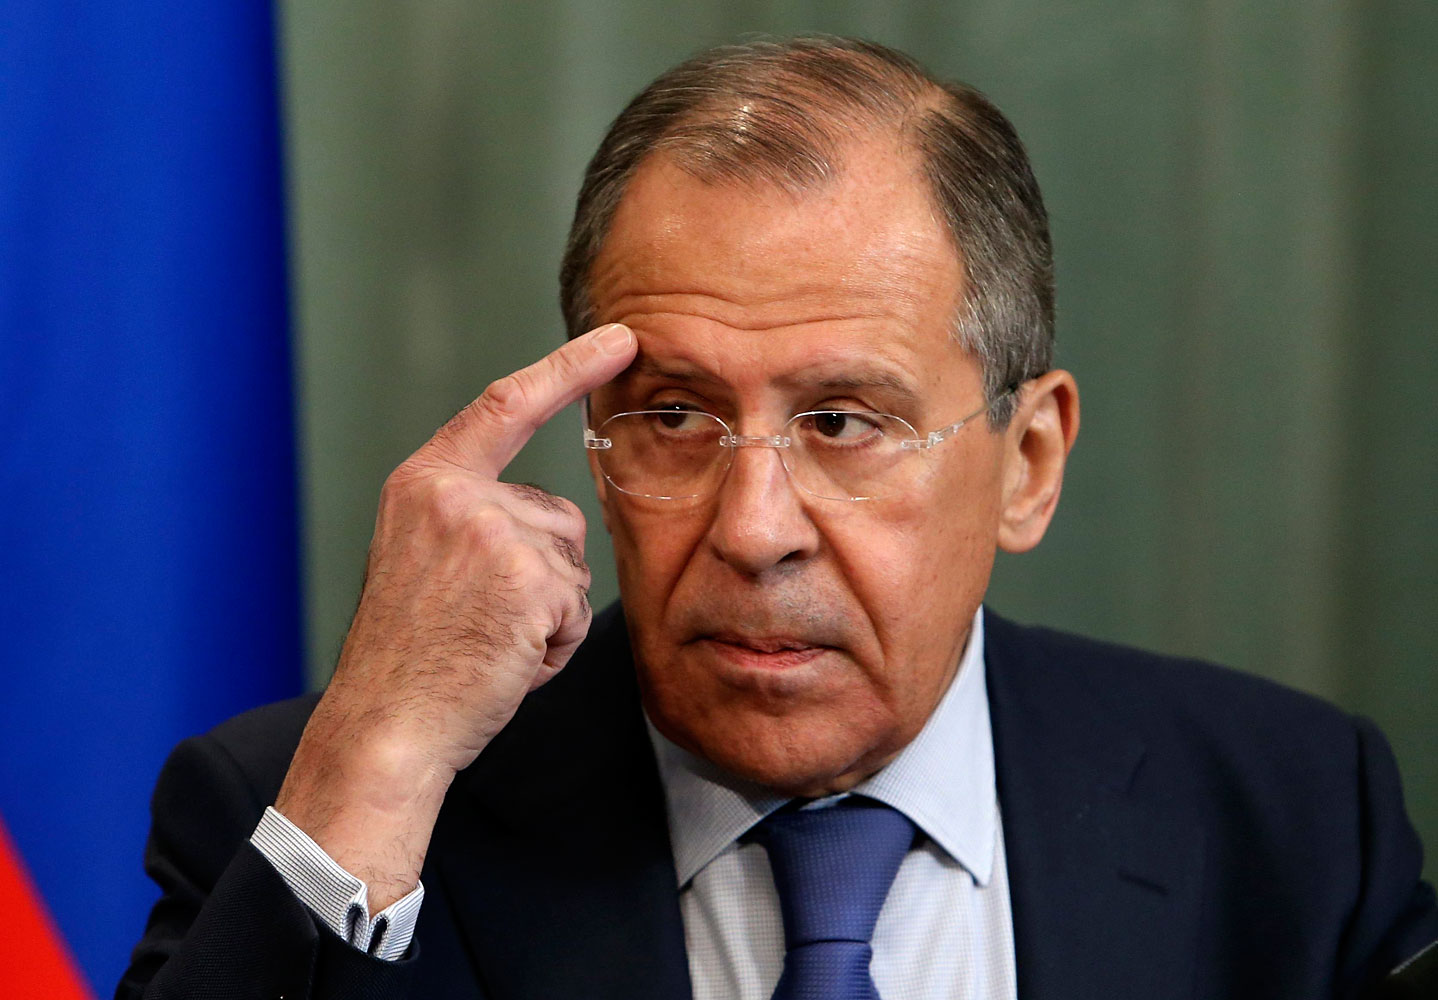 Russia's Foreign Minister Sergei Lavrov gestures during a news conference, after a meeting with his counterpart from Mozambique Oldemiro Baloi, in Moscow April 21, 2014.